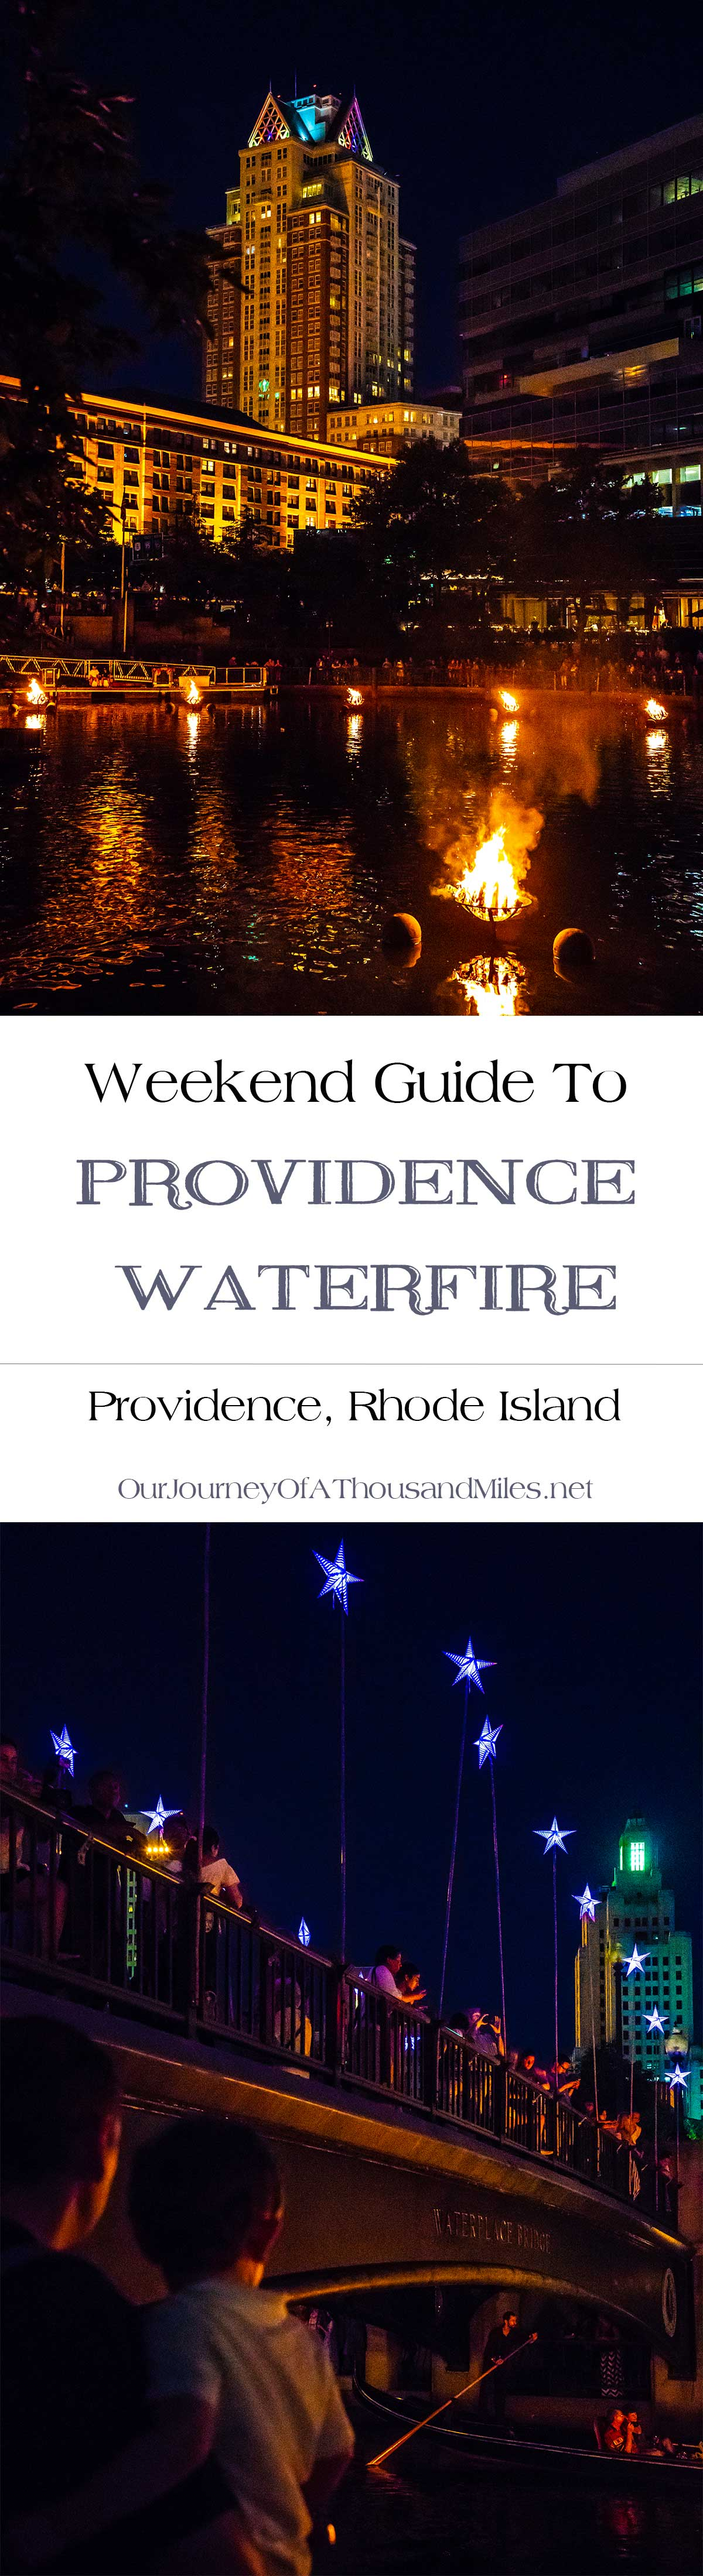 Weekend-Guide-To-WaterFire-In-Providence-Rhode-Island